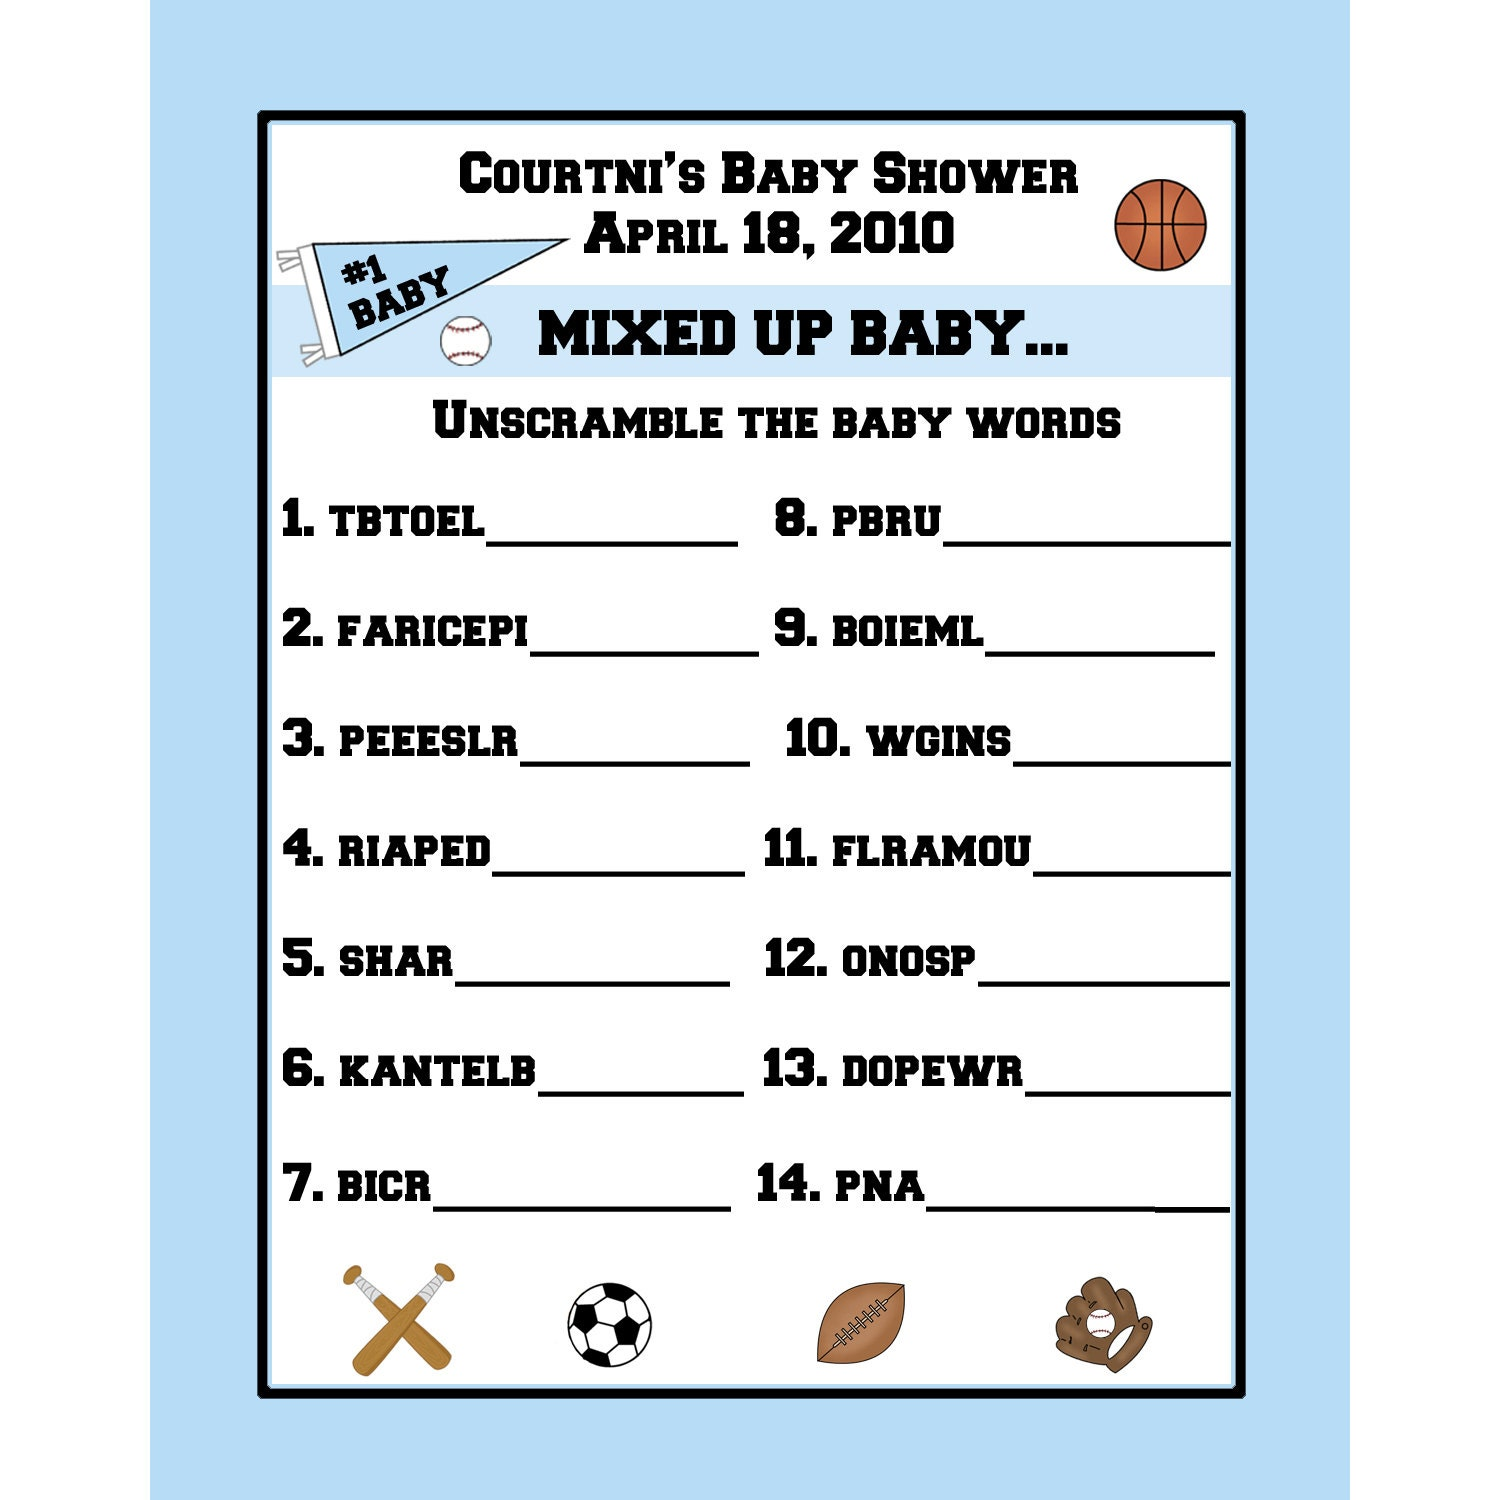 babbee baby shower word scramble answers